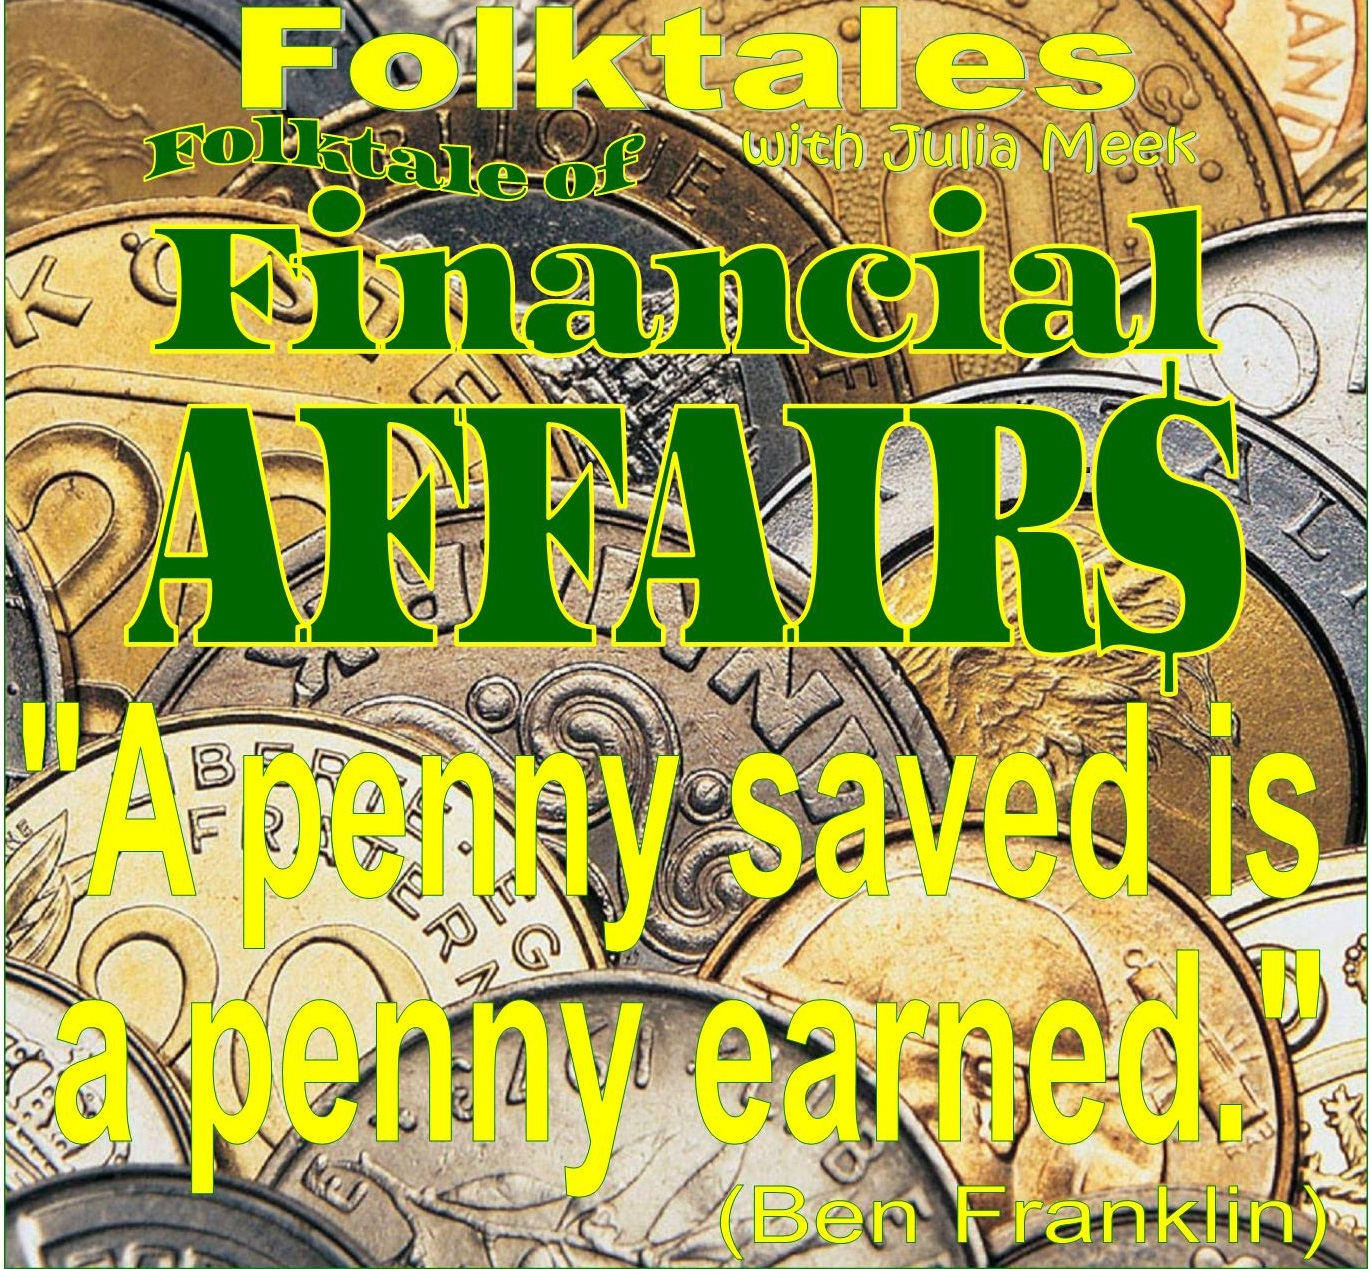 Caption: WBOI's Folkale of Financial Affairs, Credit: Julia Meek